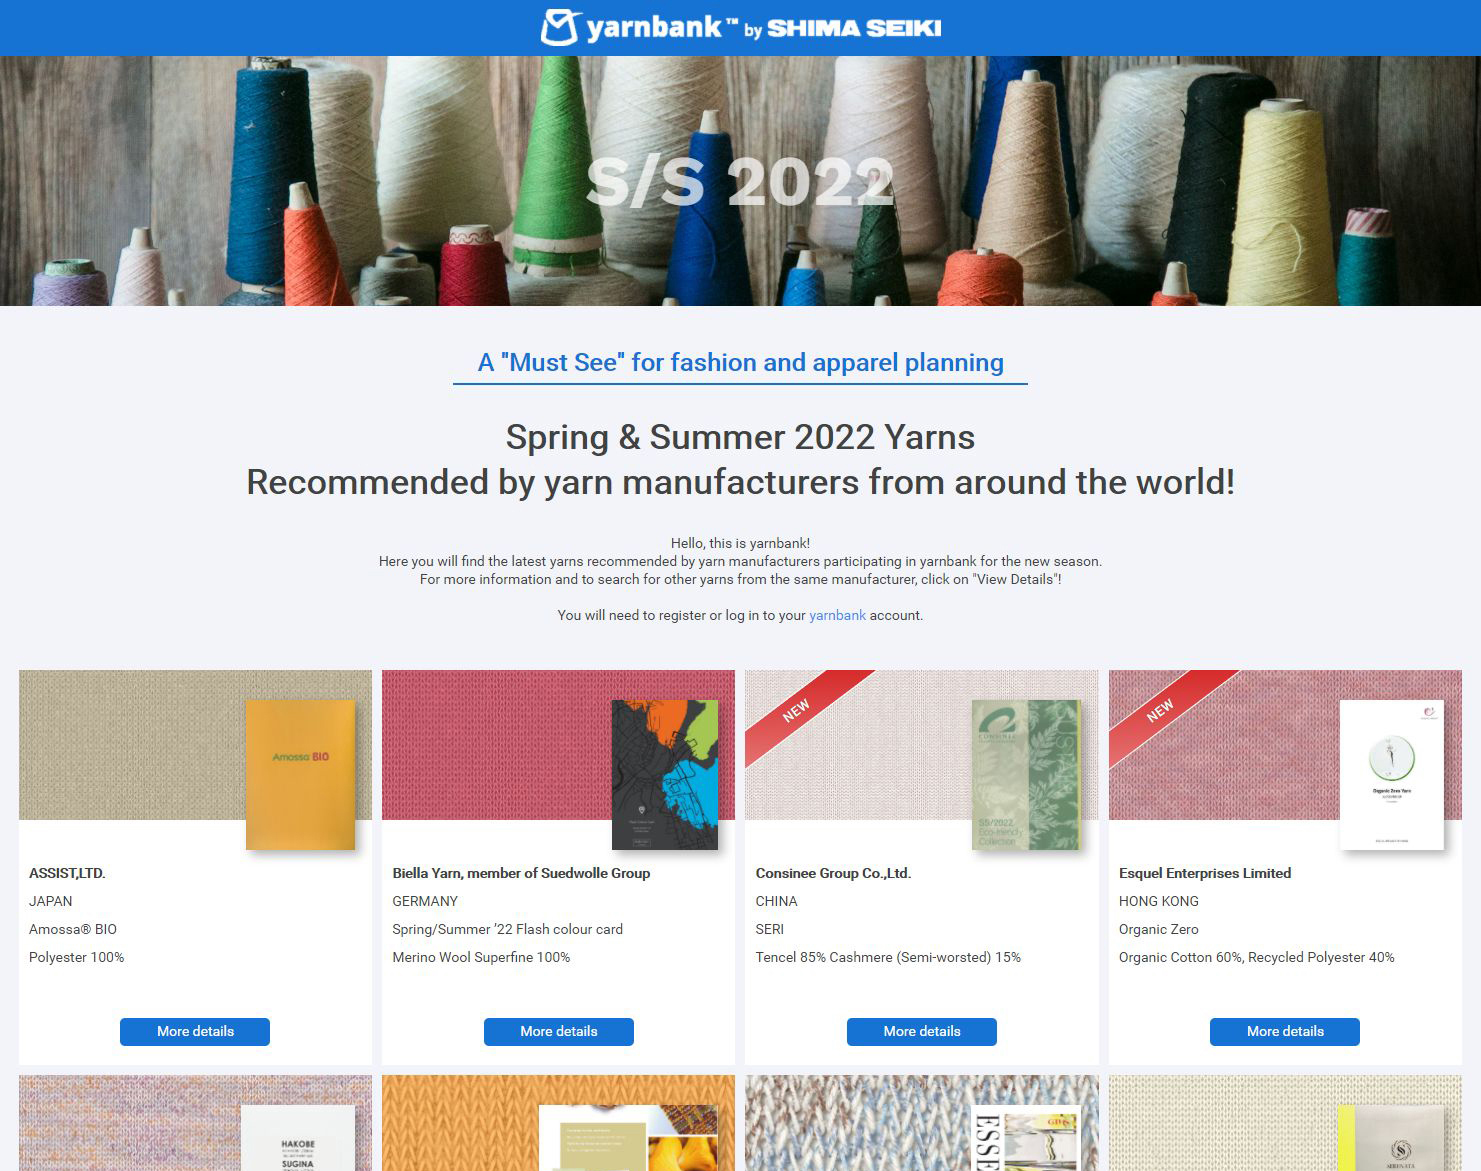 yarnbank presents Spring/Summer 2022 Feature Page